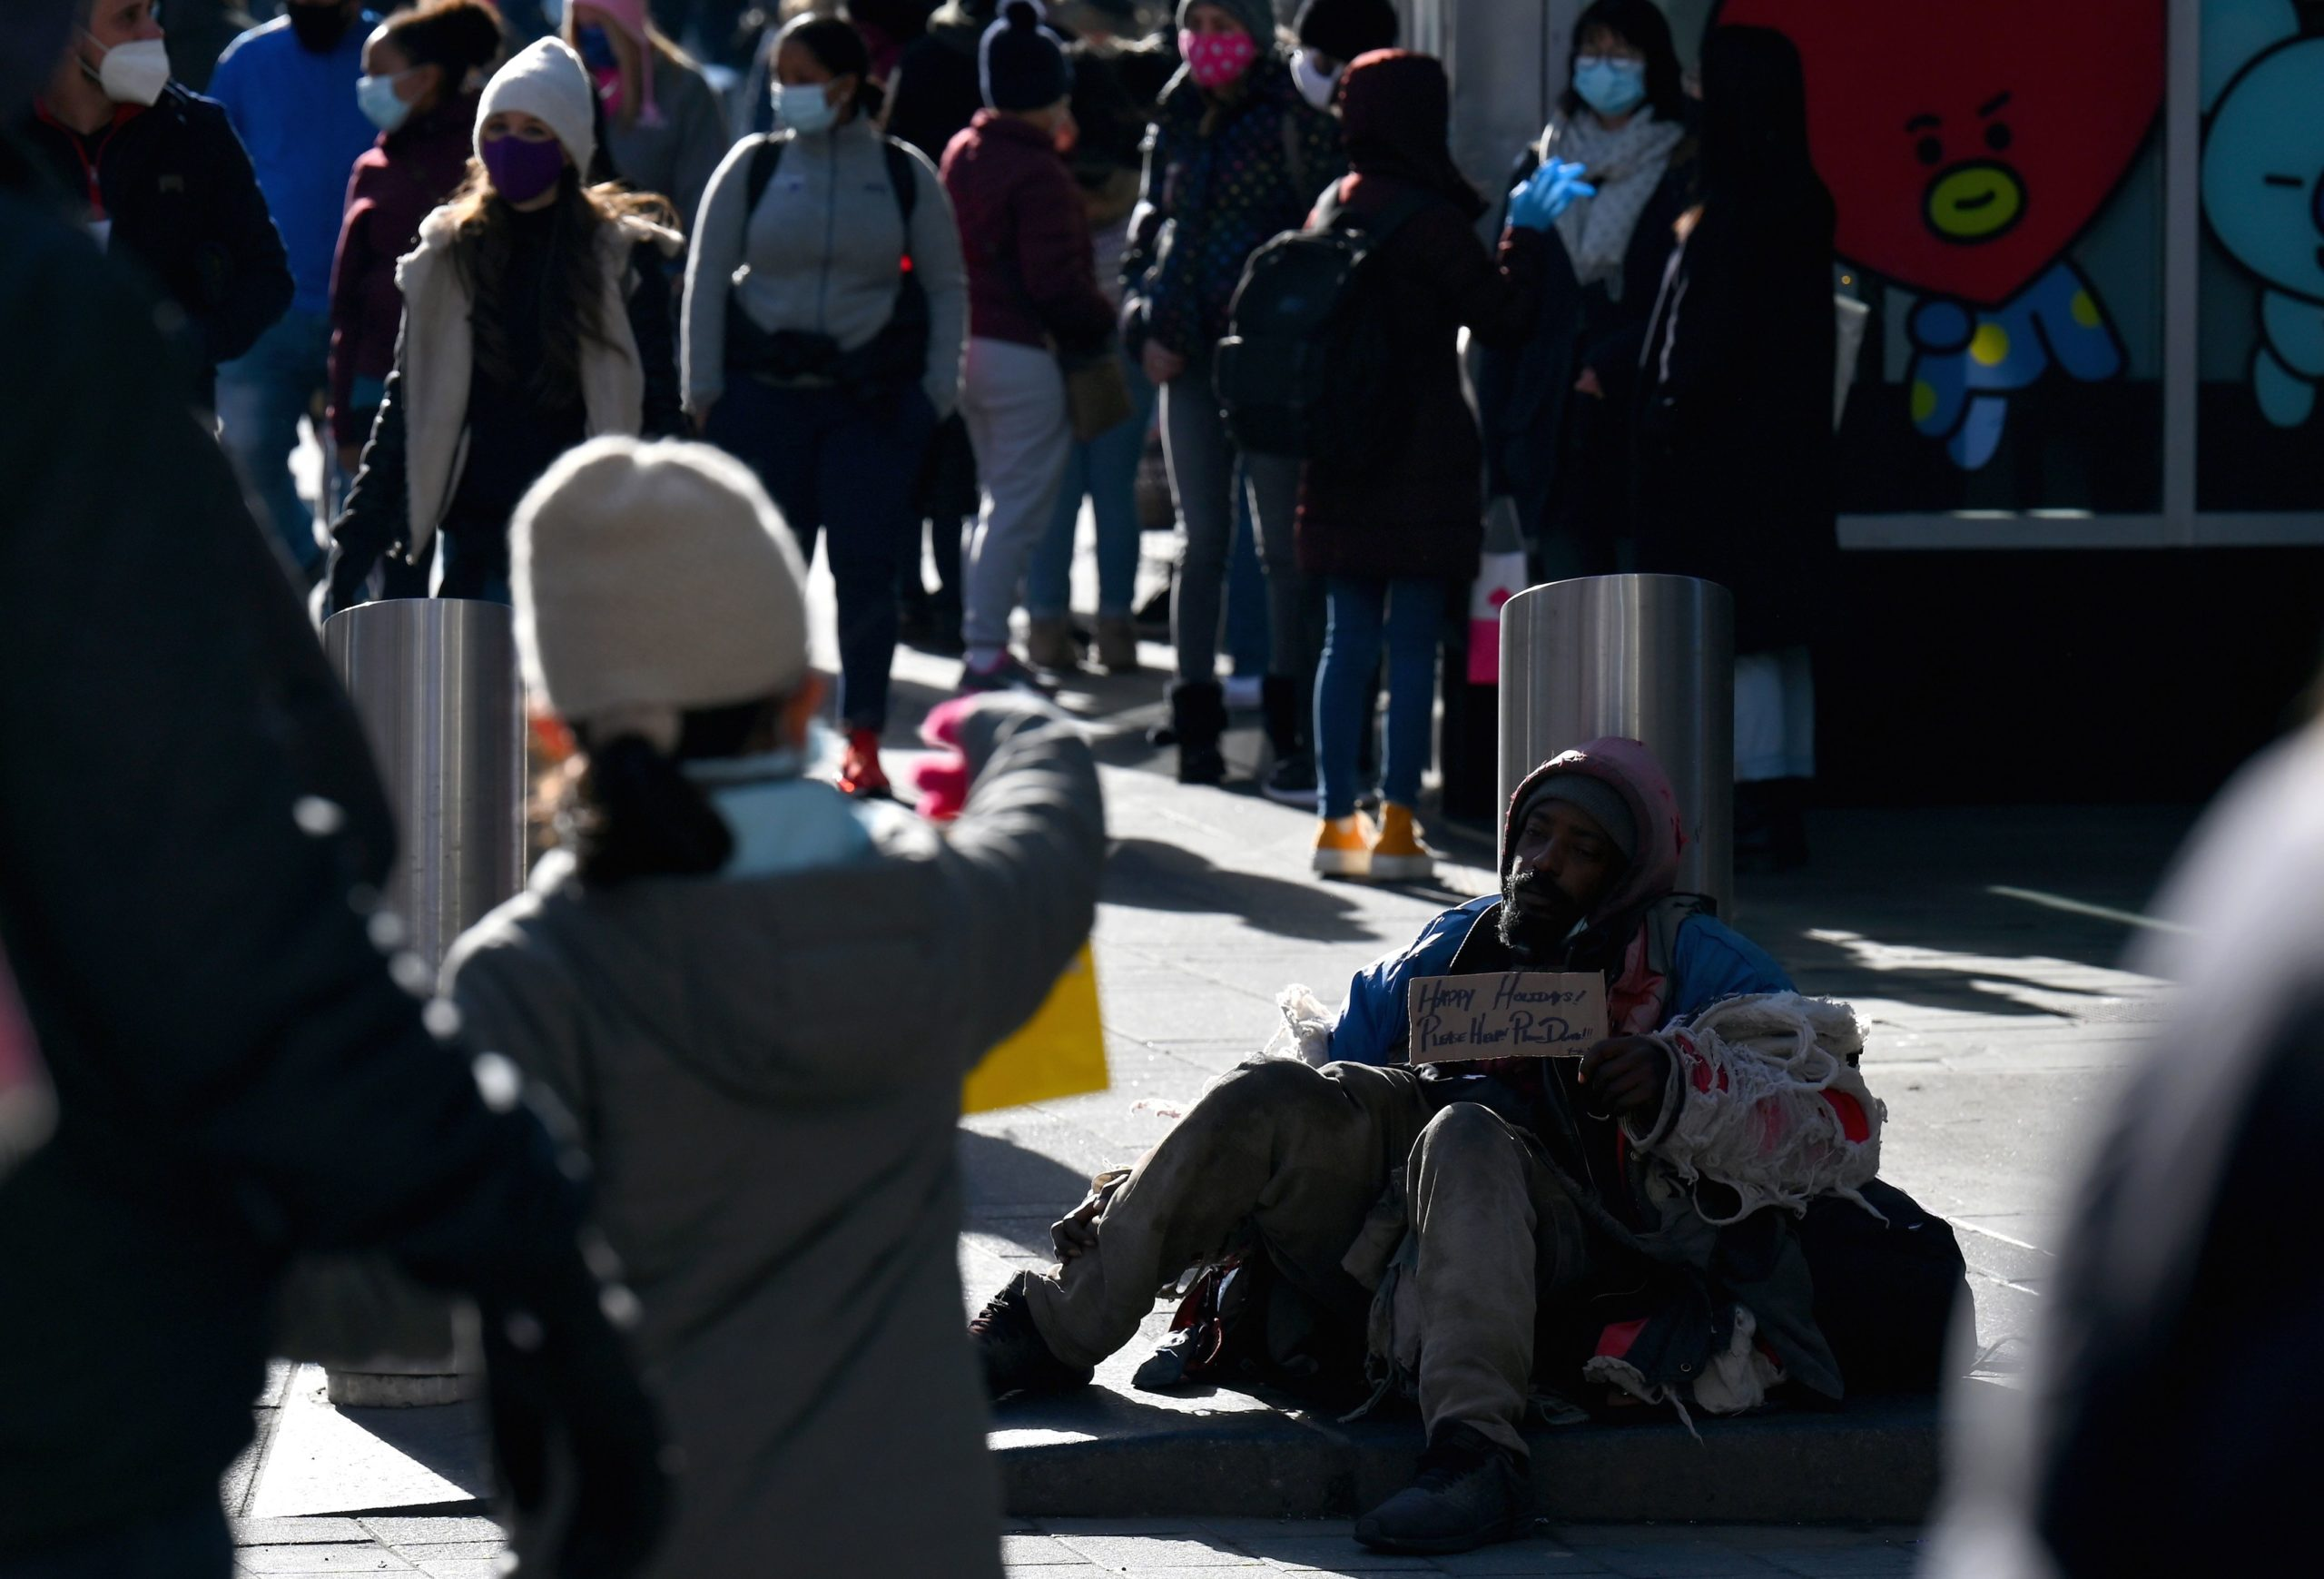 A homeless man sits on the street on Dec. 28 in New York City. (Angela Weiss/AFP via Getty Images)